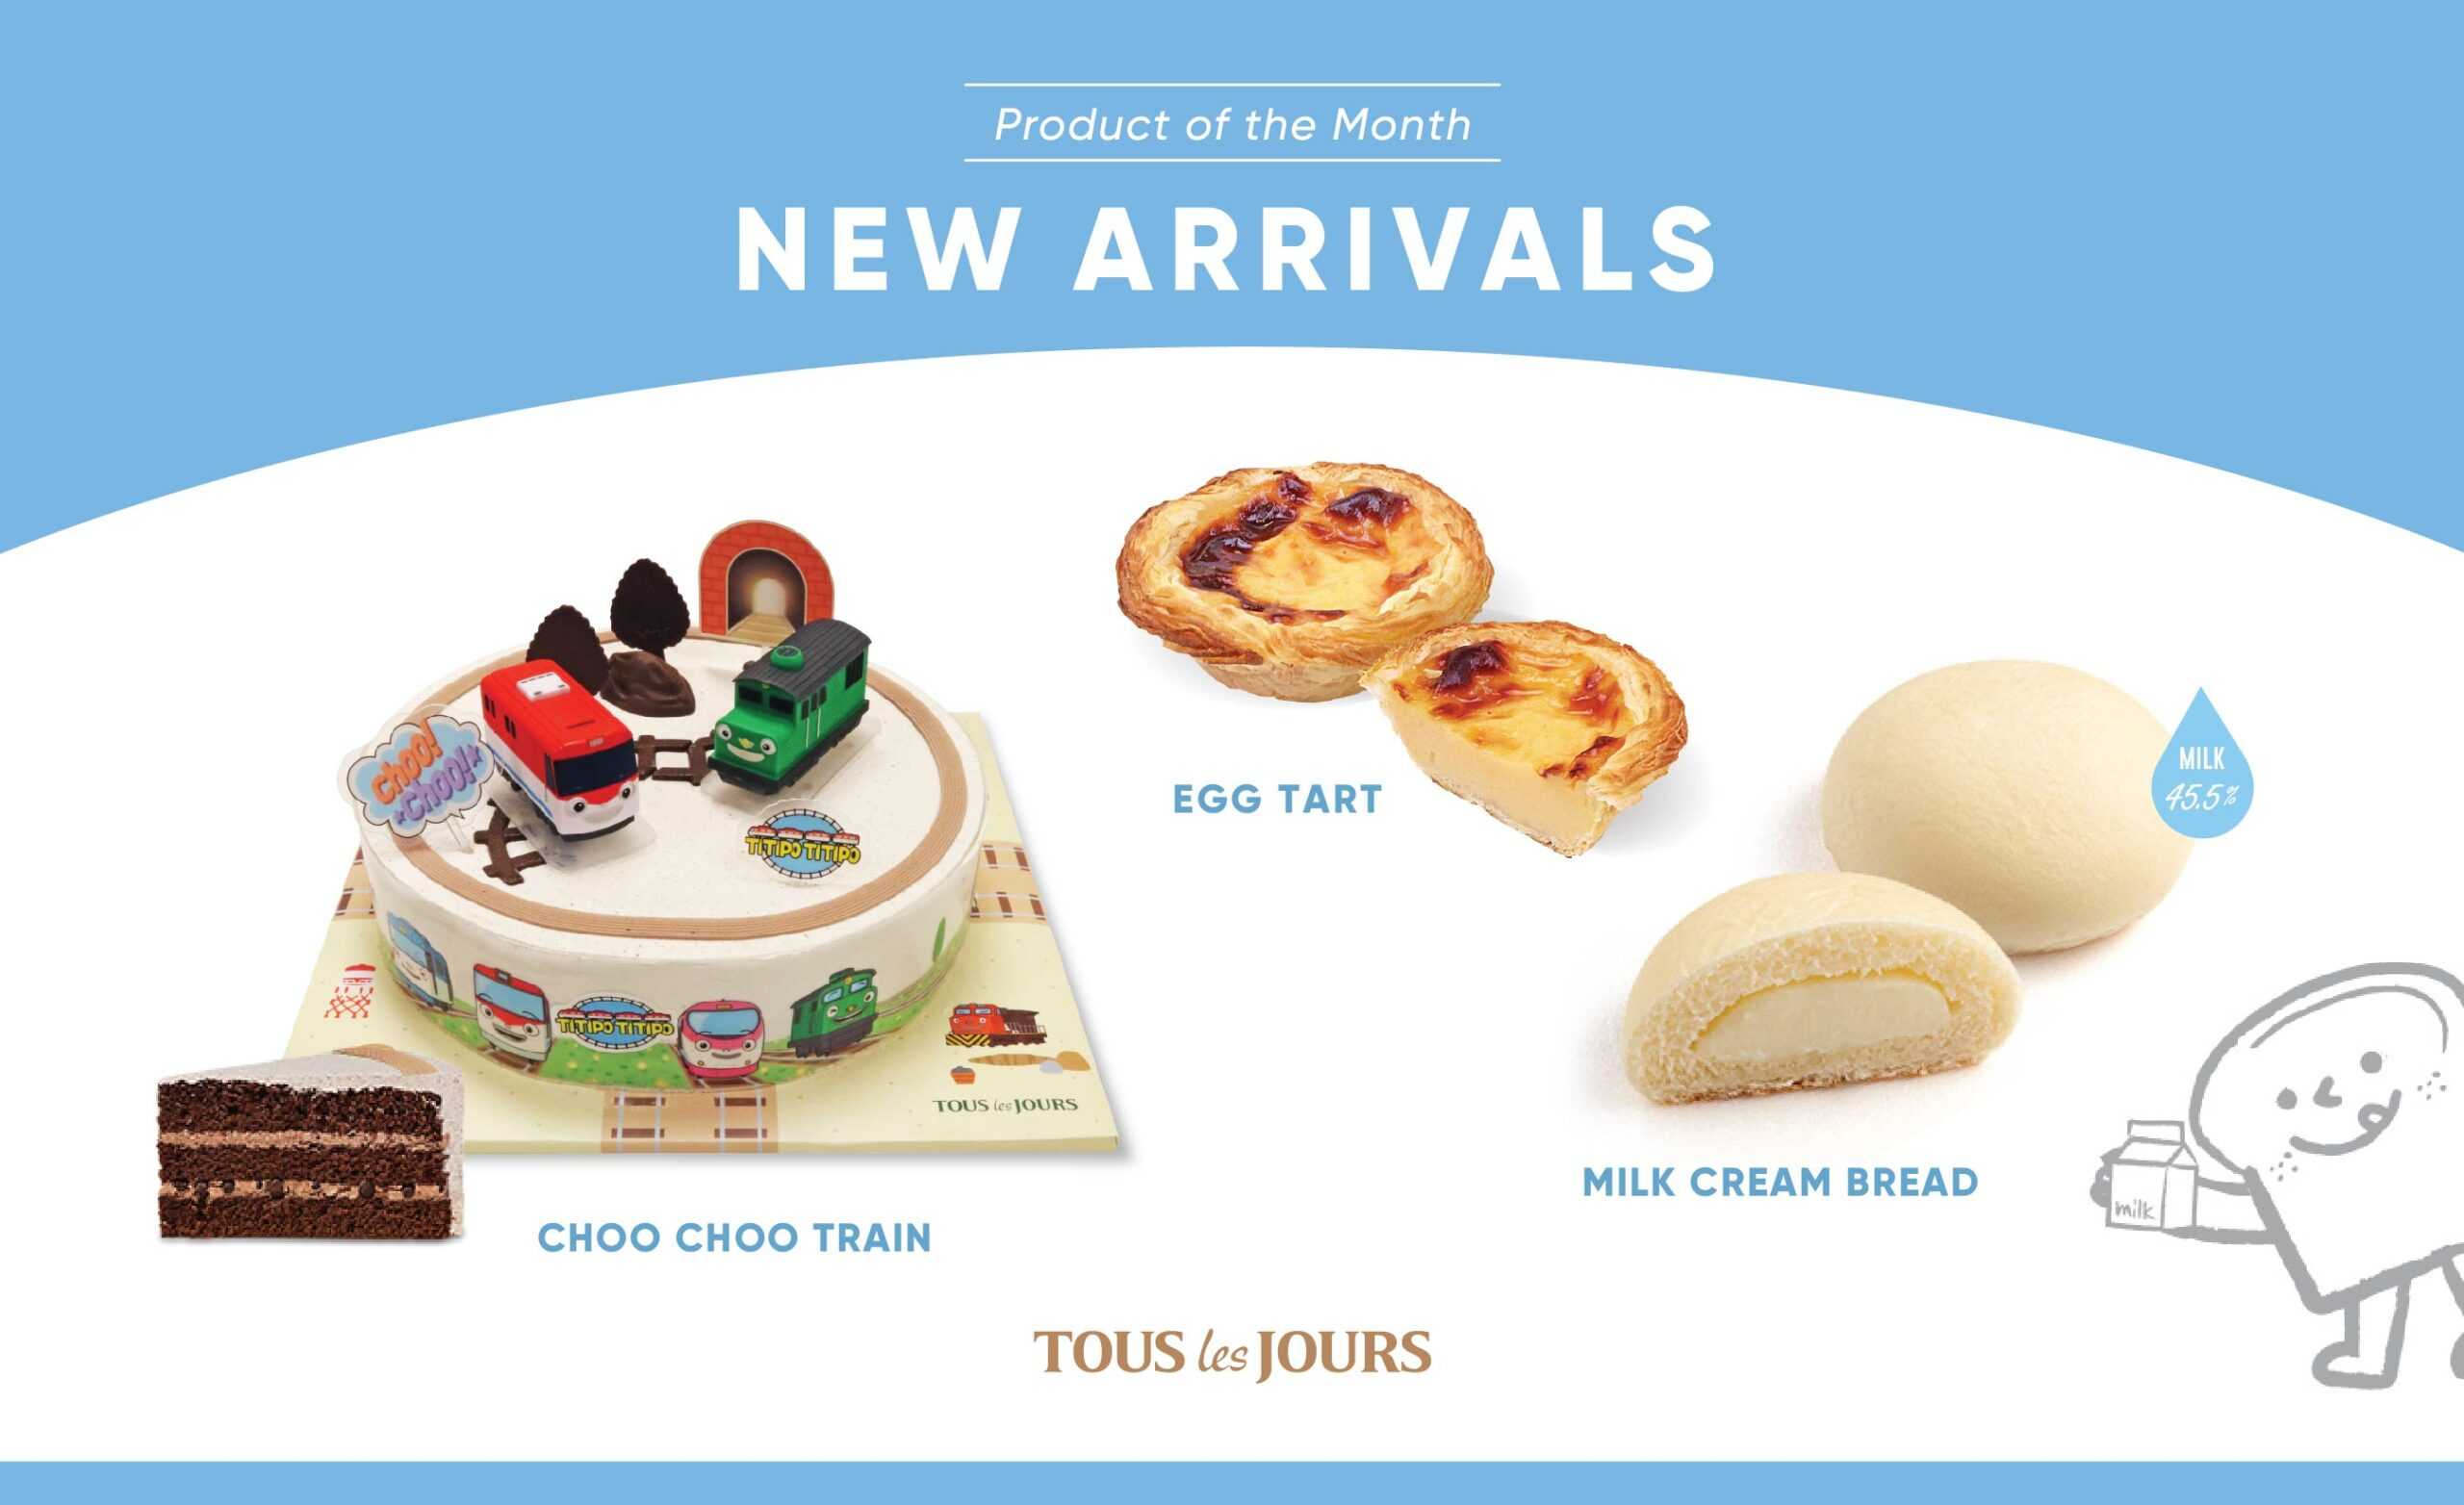 TOUS Les JOURS Bakery to Launch Portuguese Style Egg Tart and More